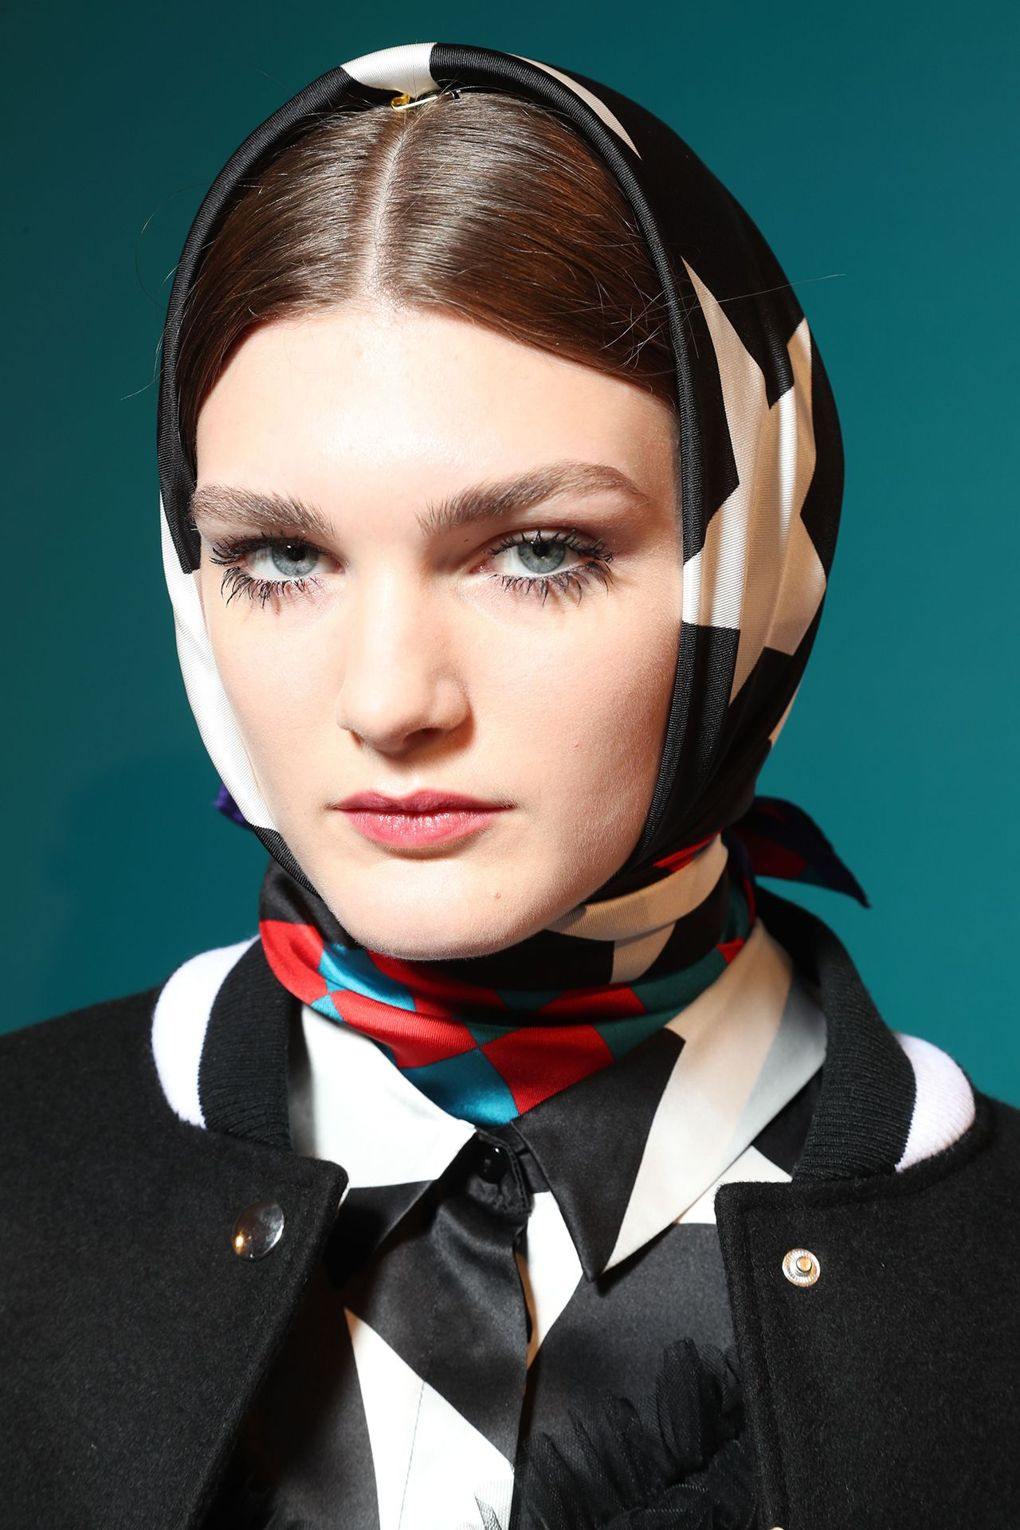 The City: Milan The Show: MSGM The Look: Head scarves